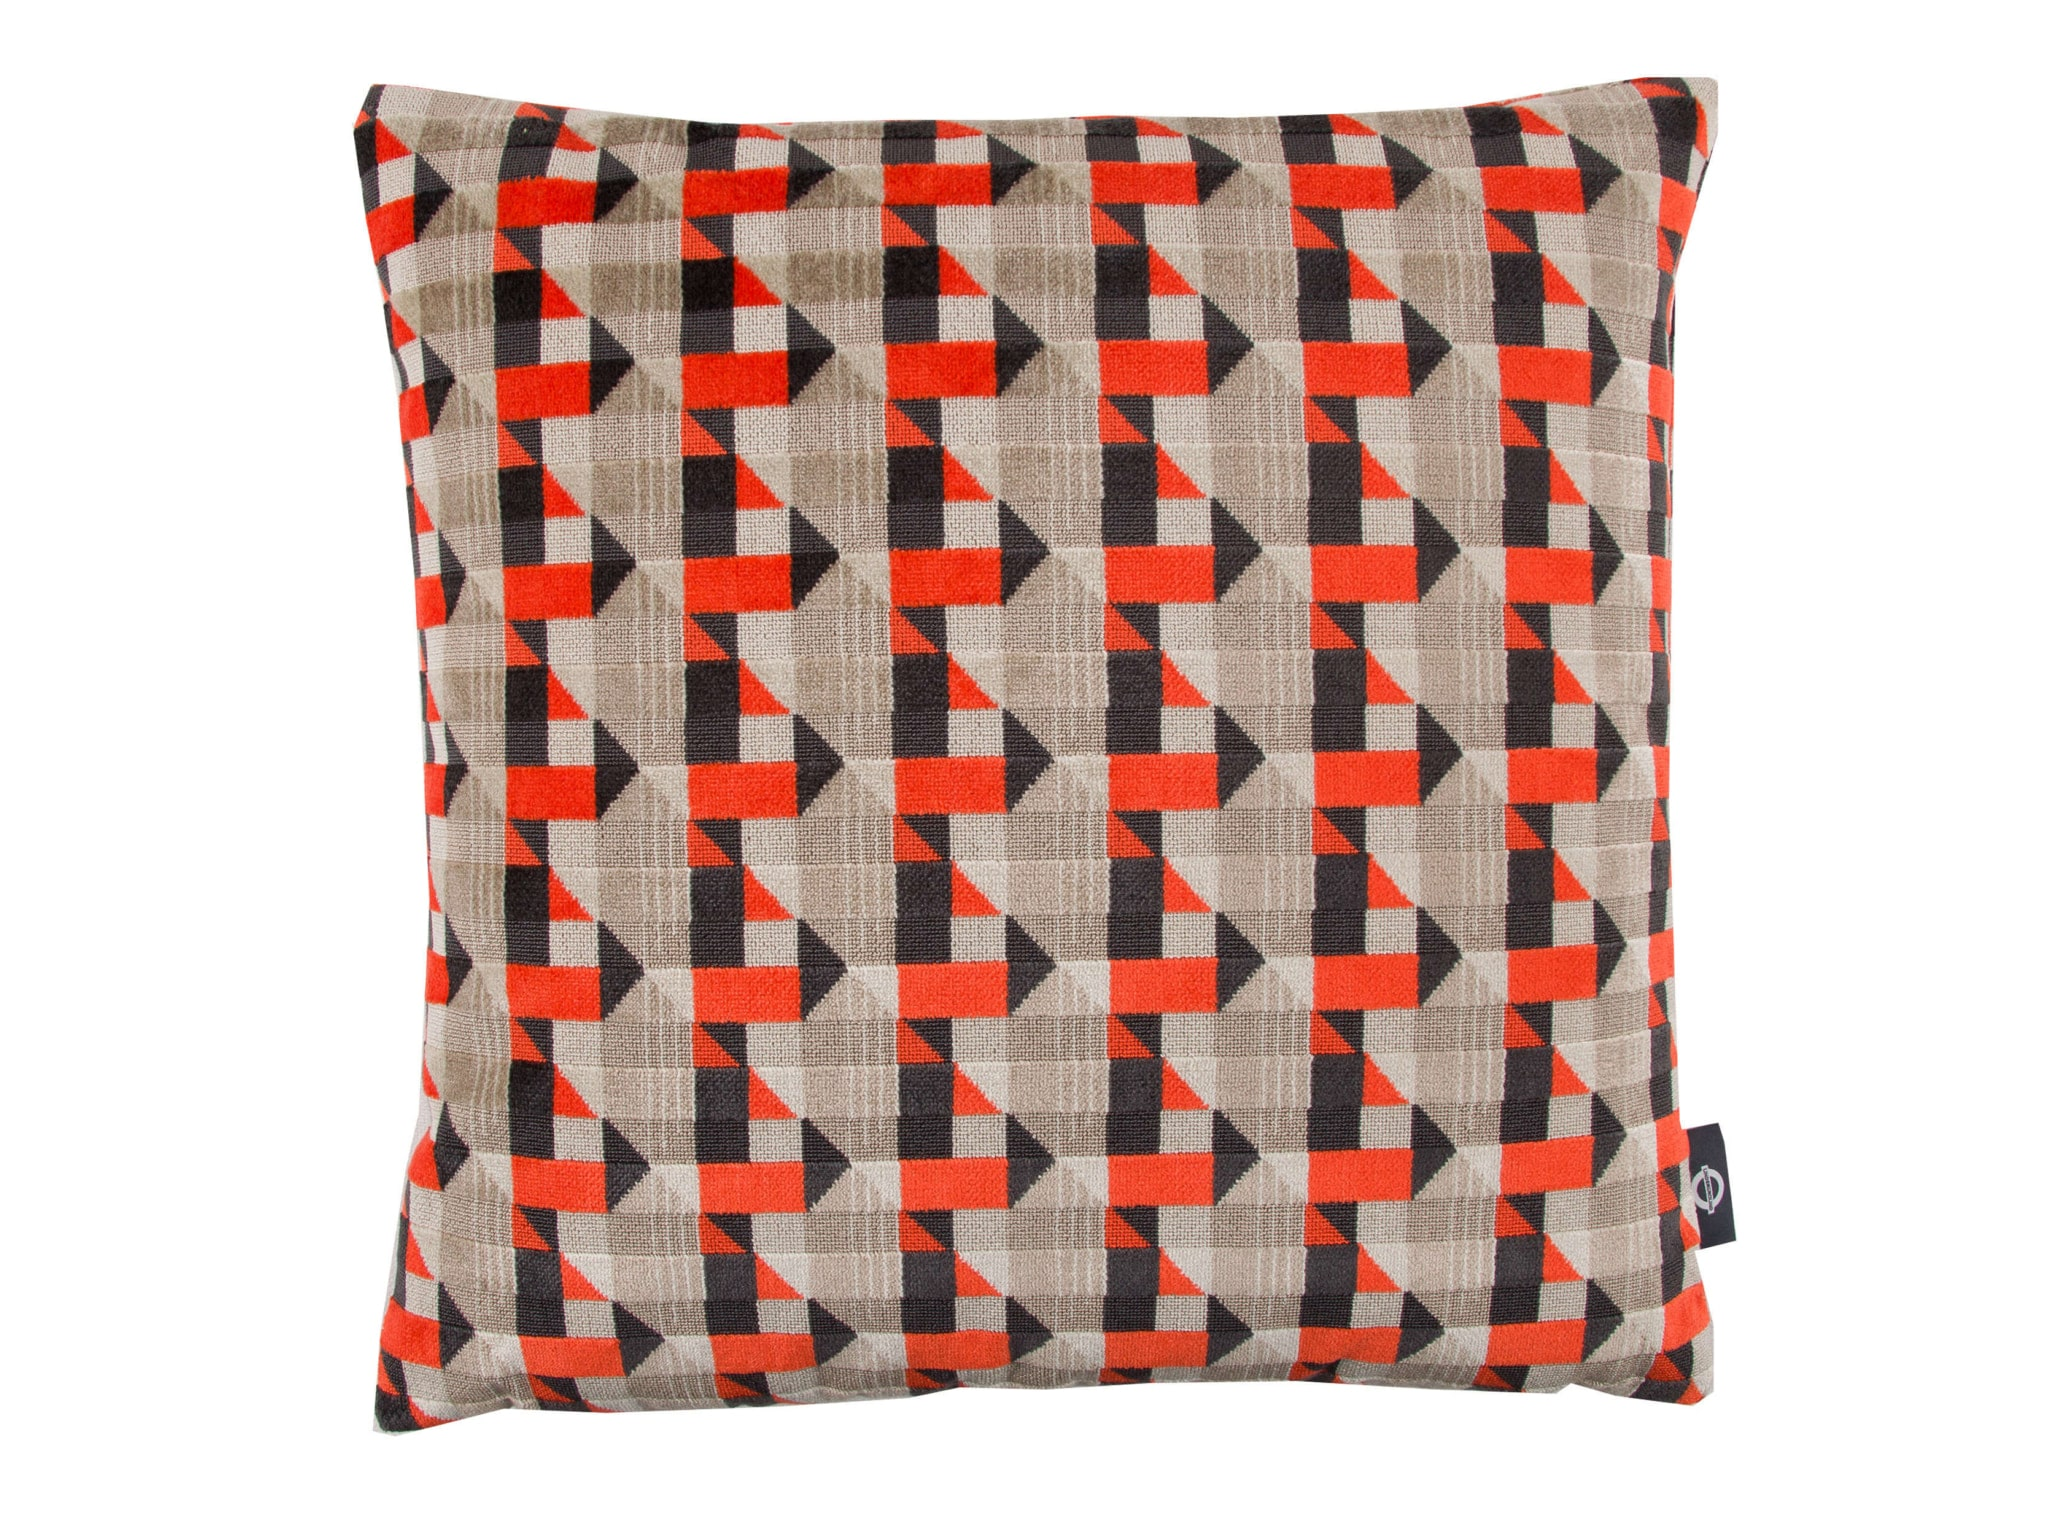 【海外取寄品】The Piccadilly クッション Neon Orange by kirkbydesign 43×43cm 中材付